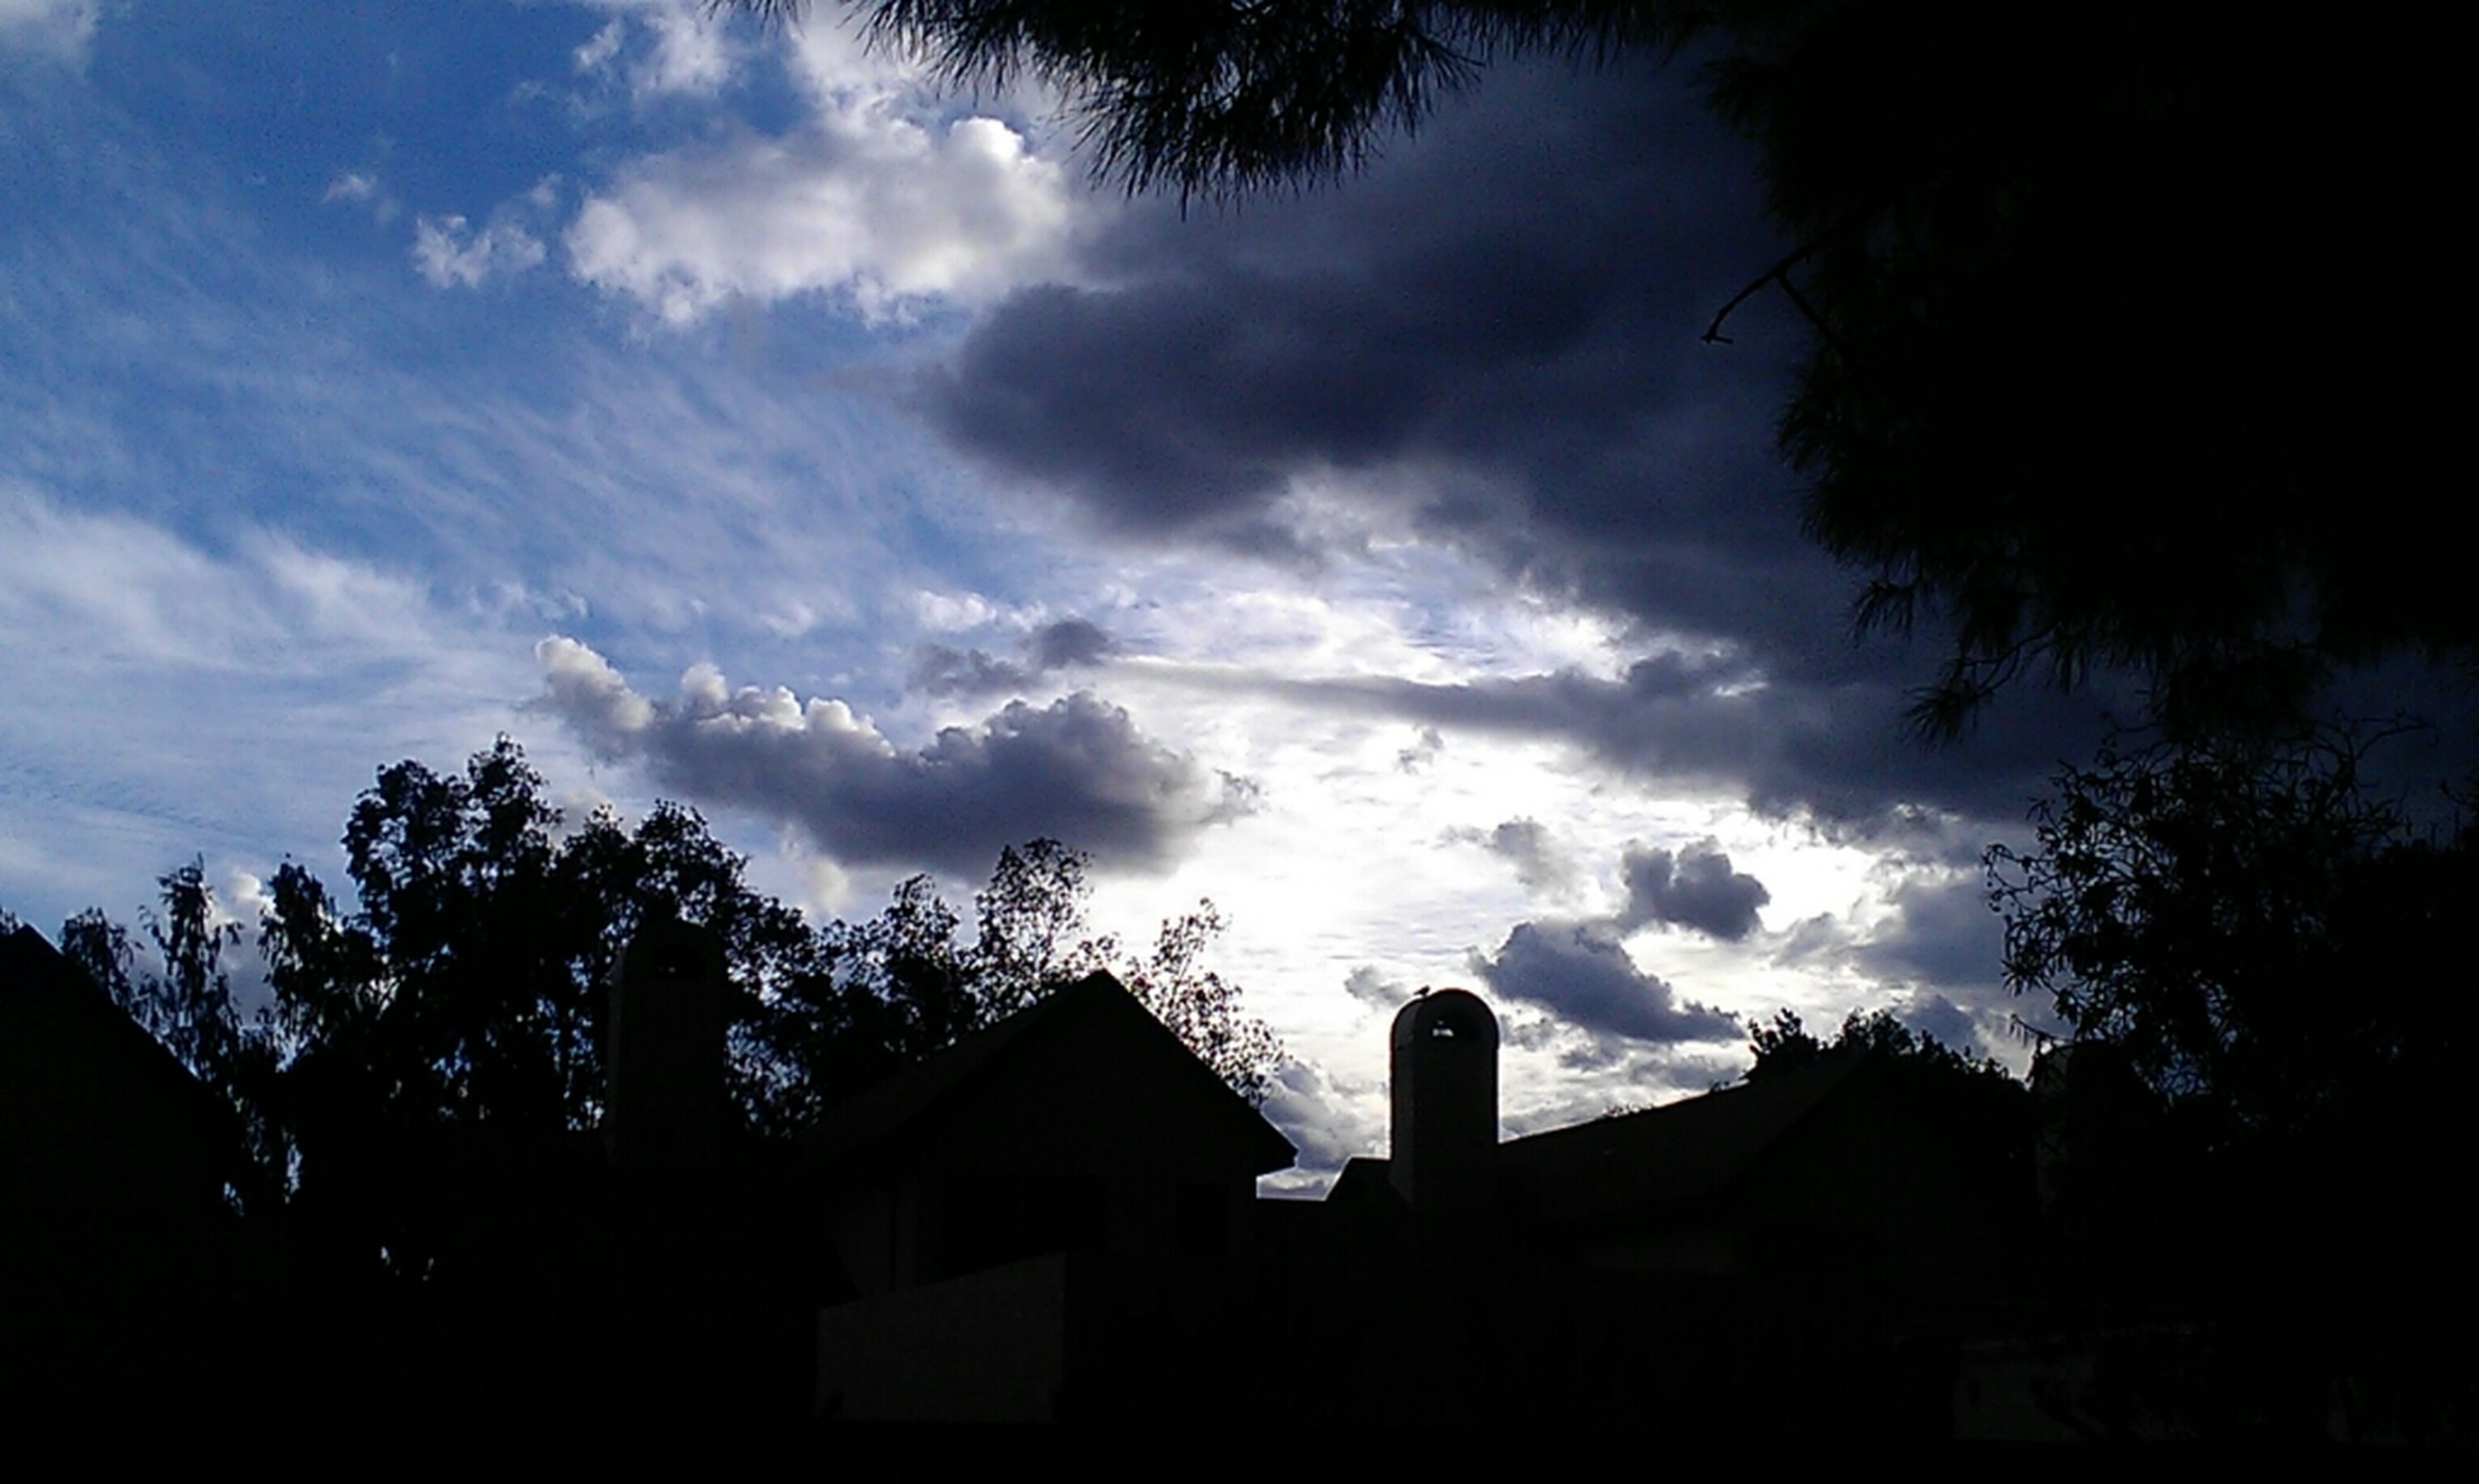 silhouette, sky, tree, cloud - sky, low angle view, cloudy, cloud, dusk, nature, beauty in nature, tranquility, weather, overcast, scenics, built structure, tranquil scene, outdoors, storm cloud, growth, building exterior